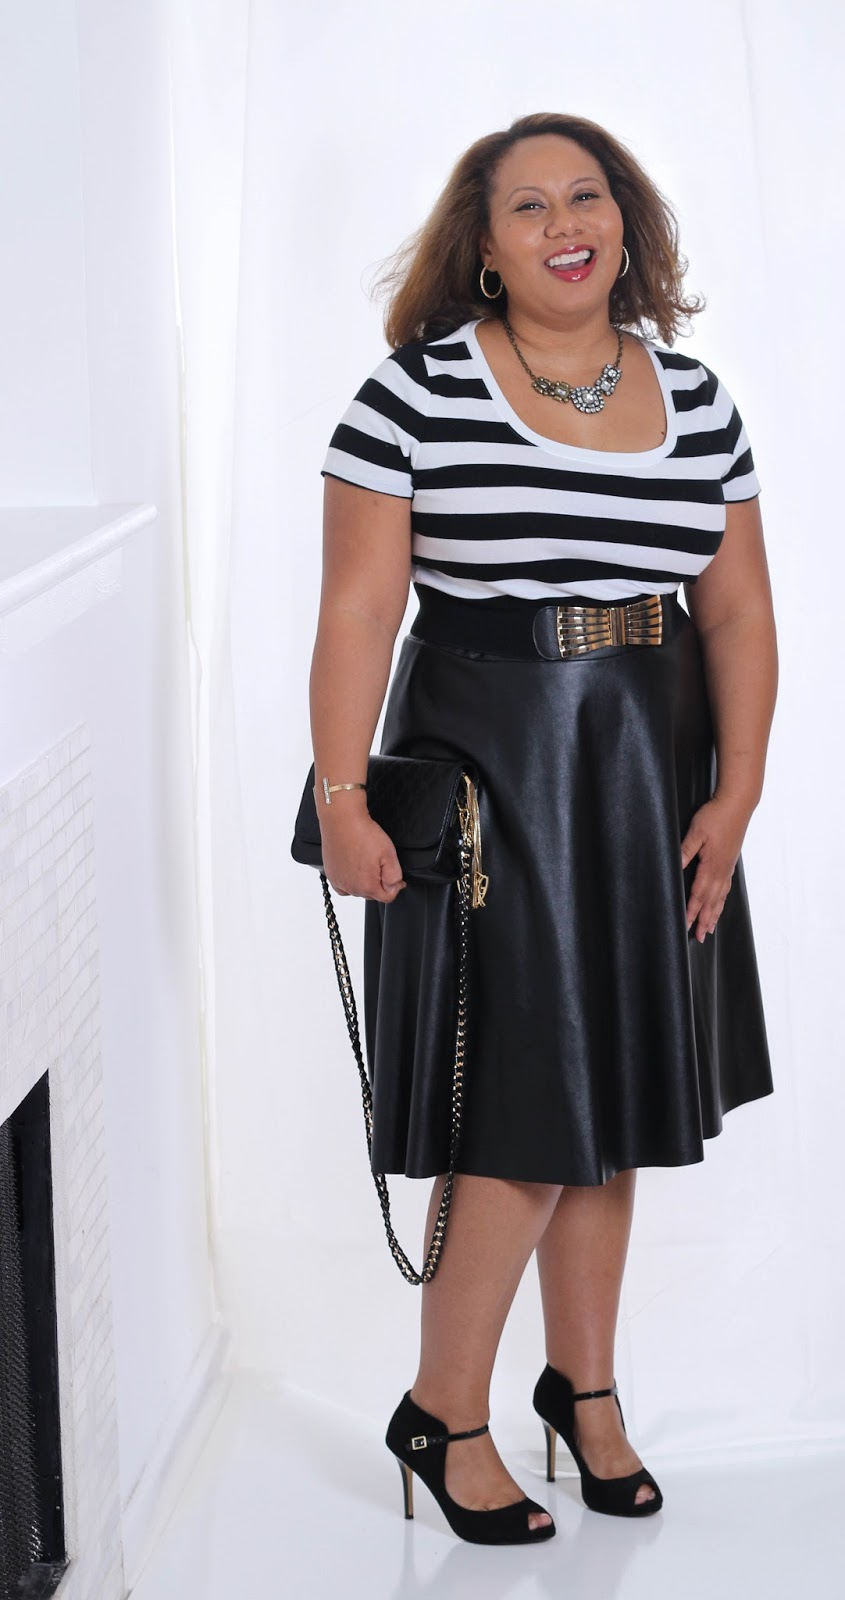 Try the Trend: Faux Leather | Dressy Casual | Fall Fashion | Curvy Outfit Ideas | Petite Outfit Ideas | Plus Size Fashion | OOTD | Professional Casual Chic Fashion and Style Inspiration